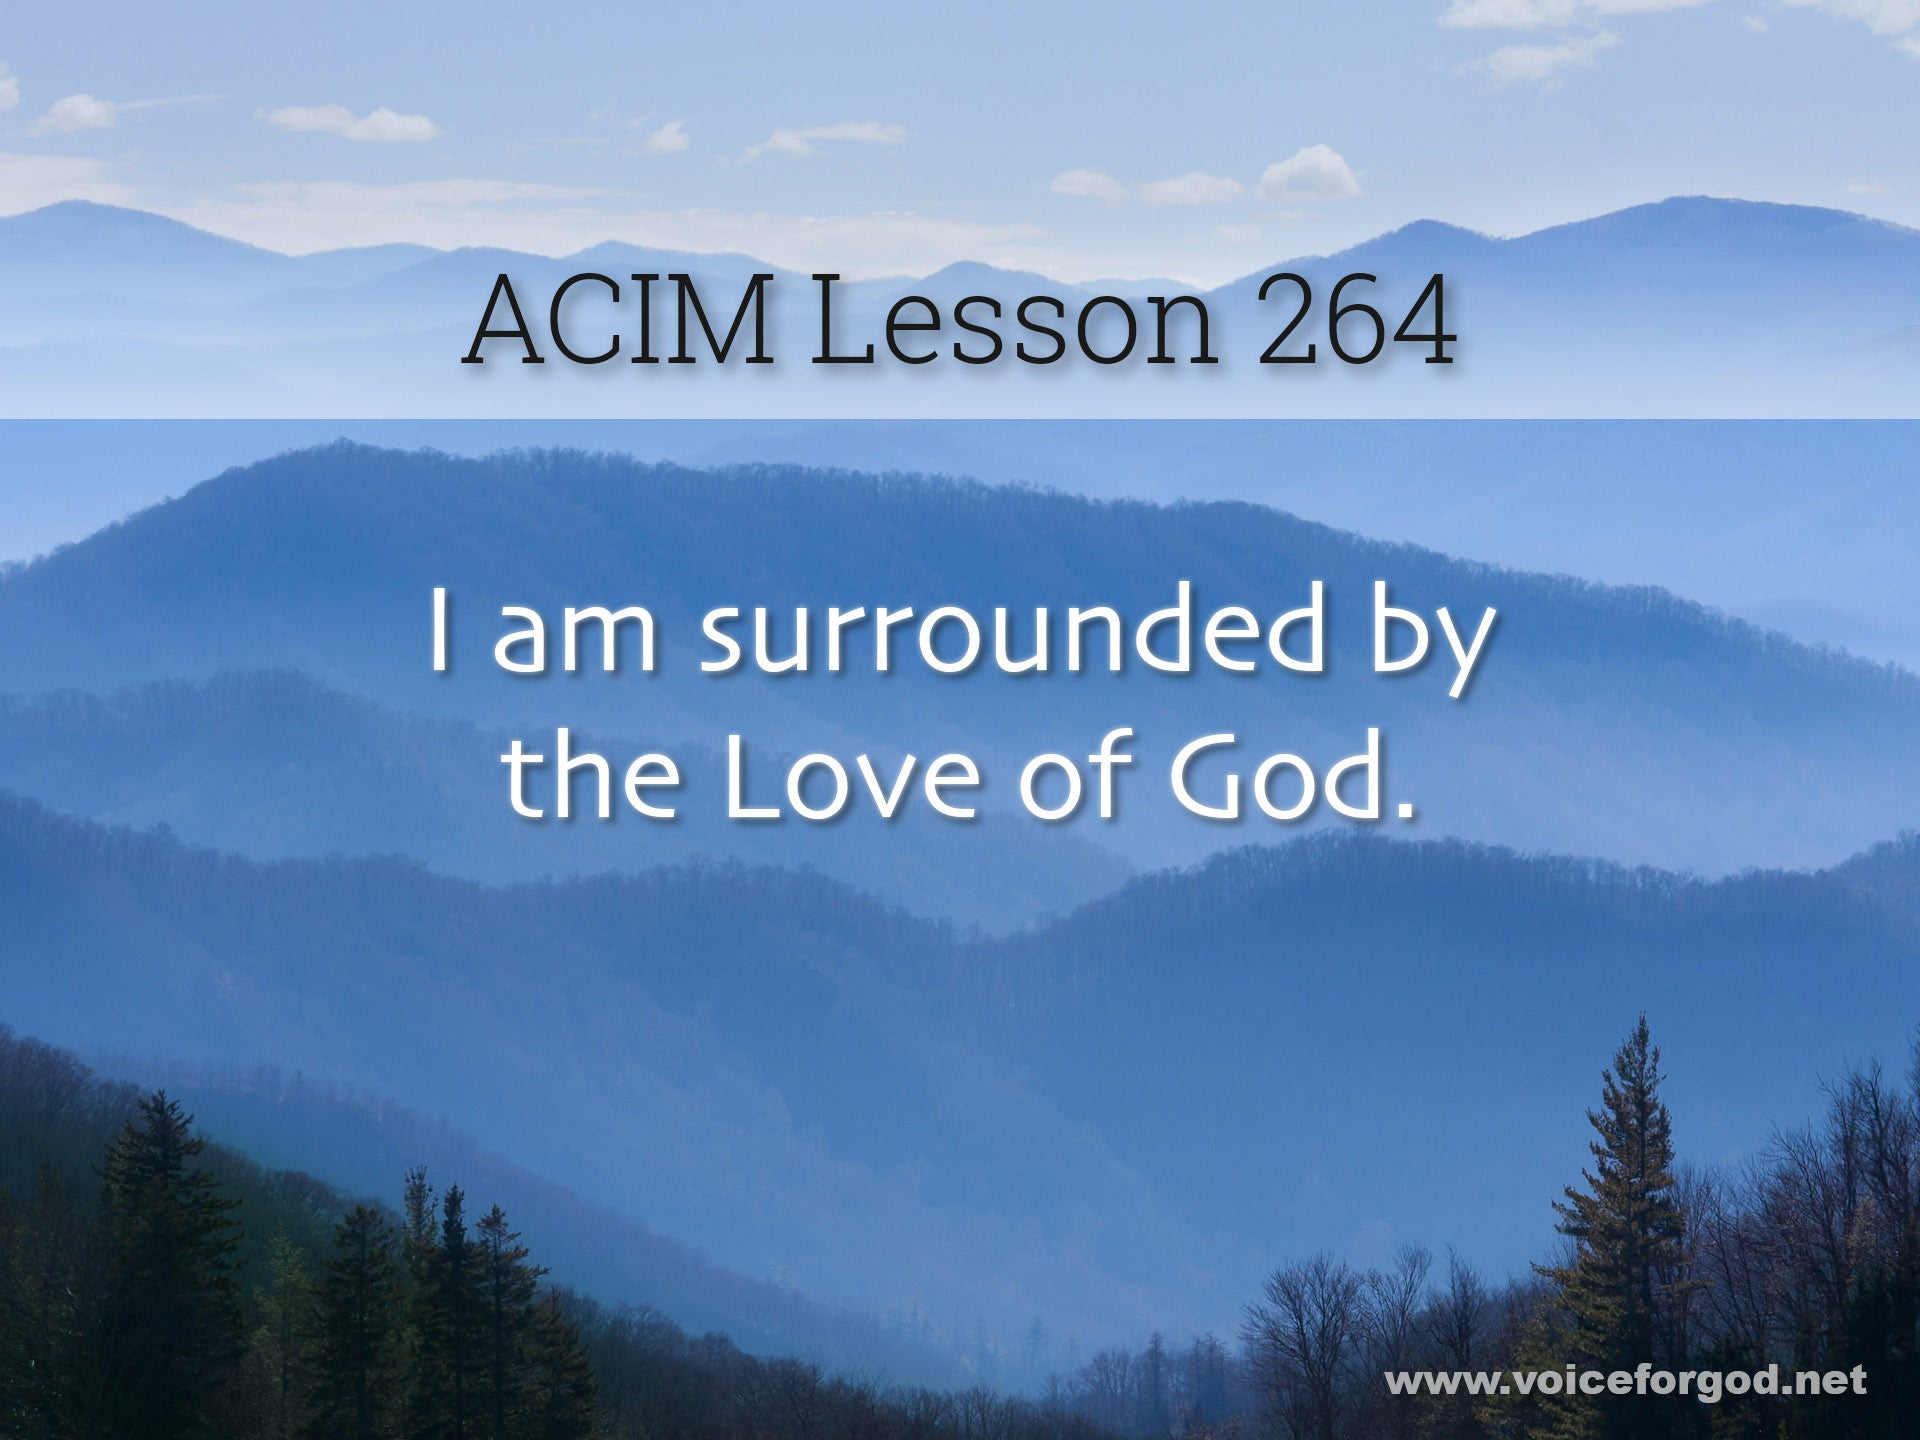 ACIM Lesson 264 - A Course in Miracles Workbook Lesson 264